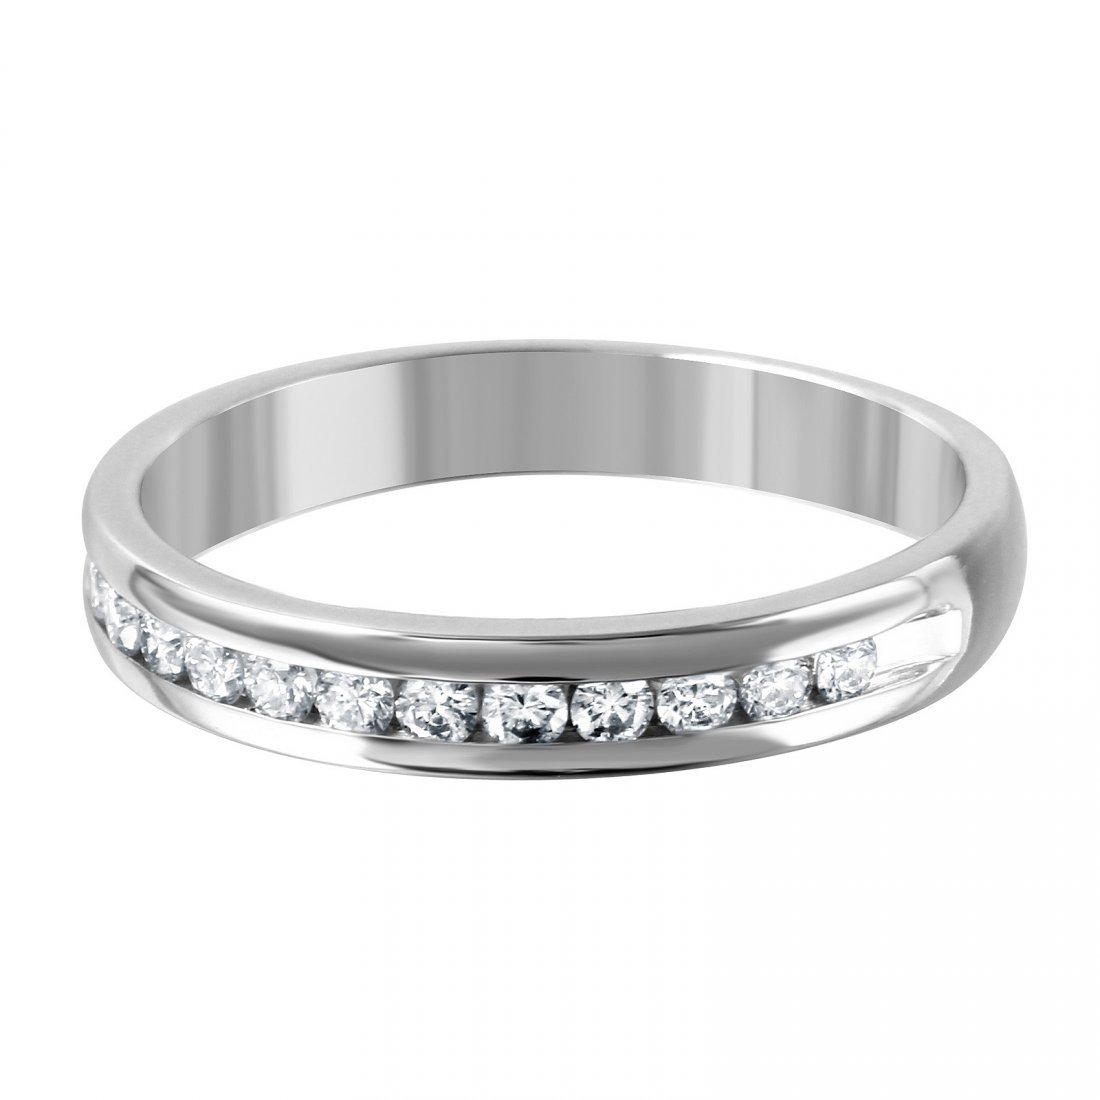 14K White Gold Diamond Wedding Band, 0.2 ctw - 3